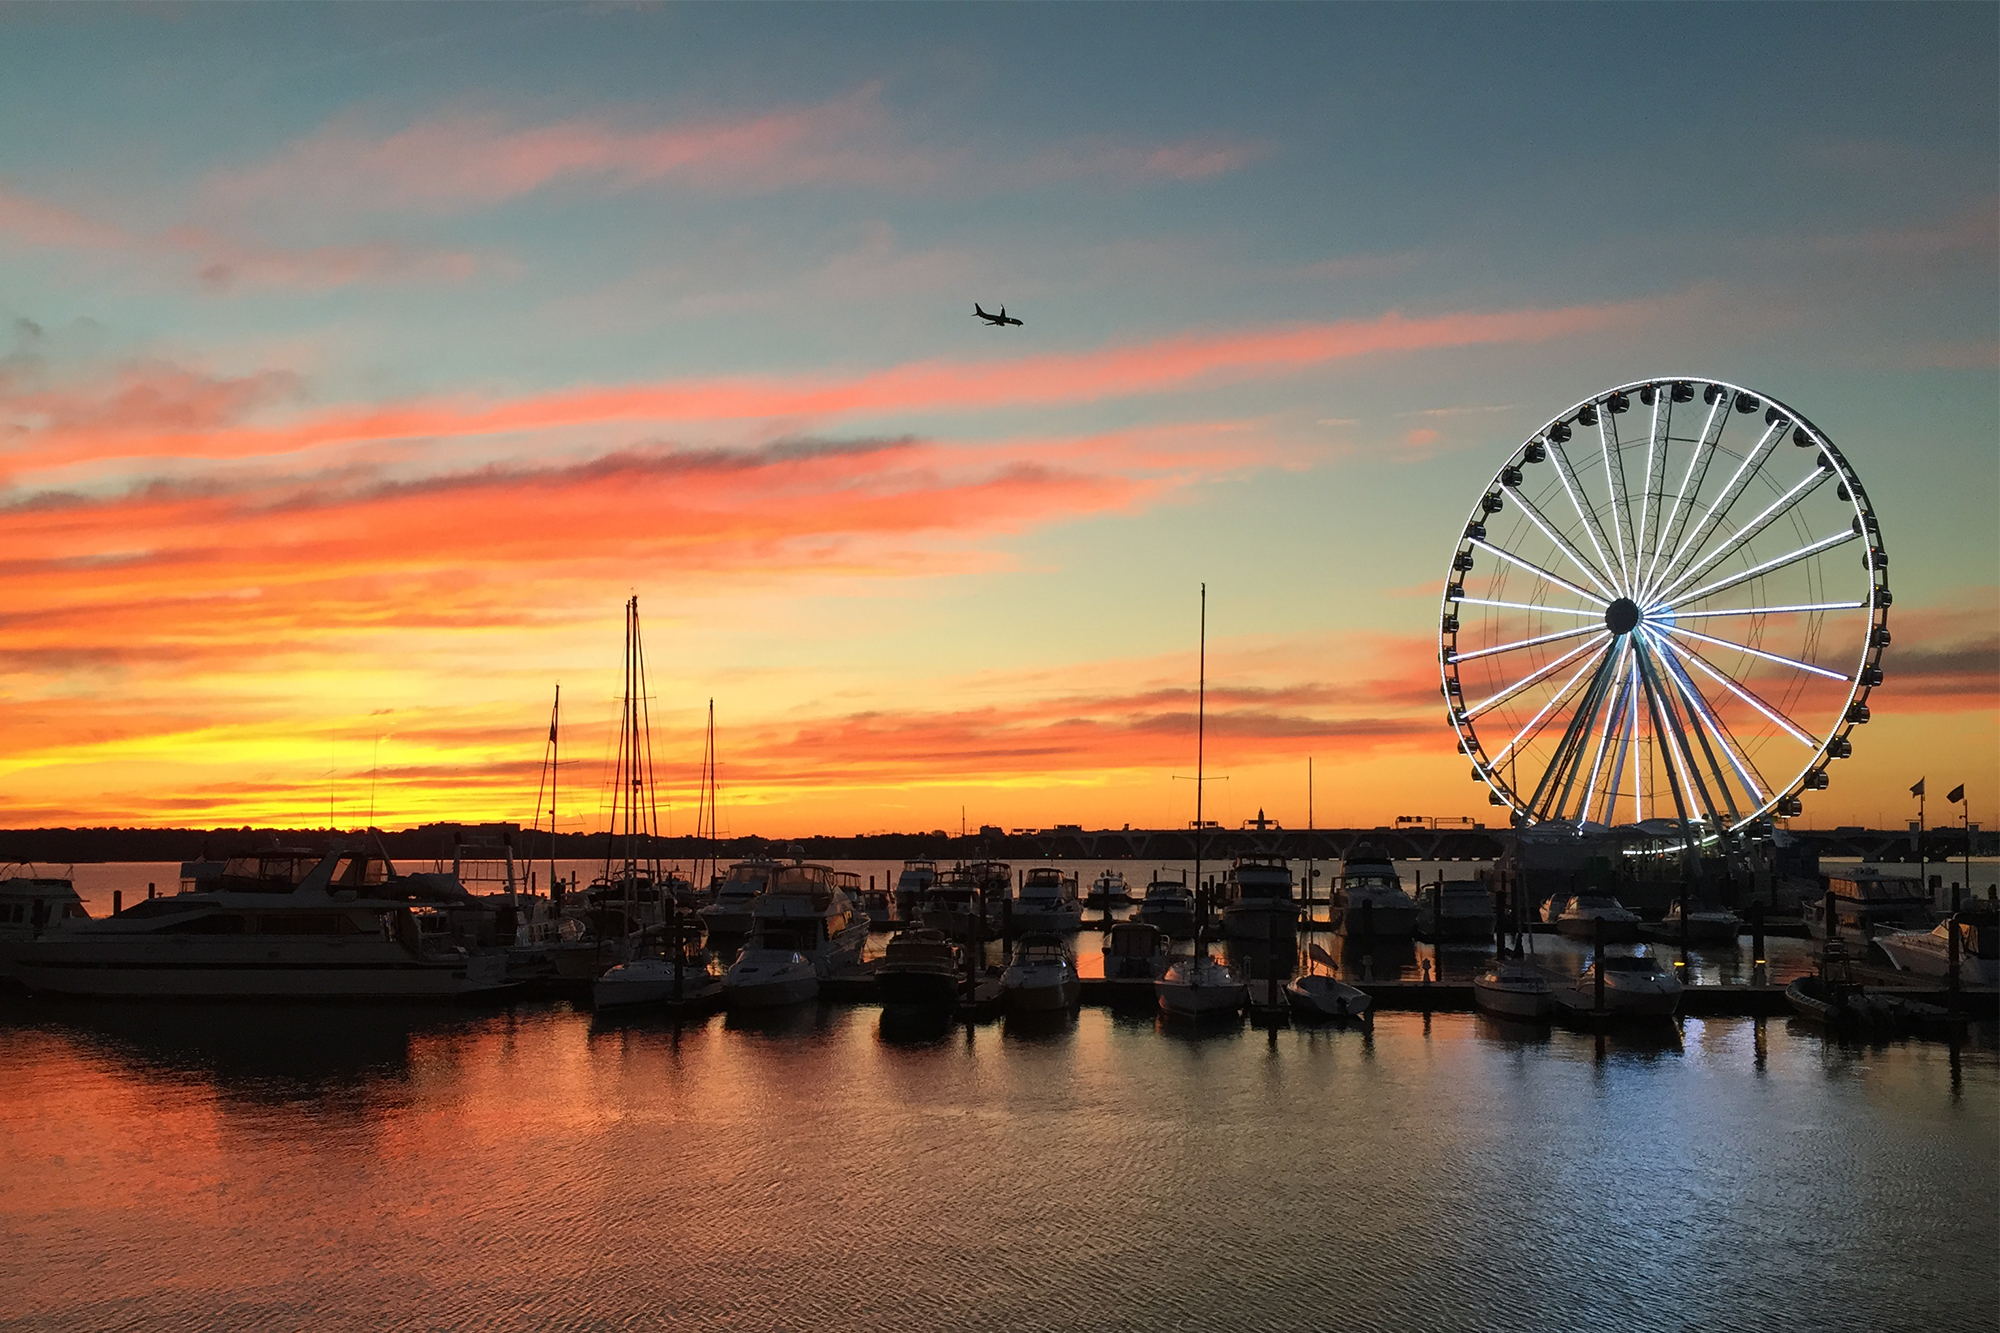 Sunset Observation Wheel